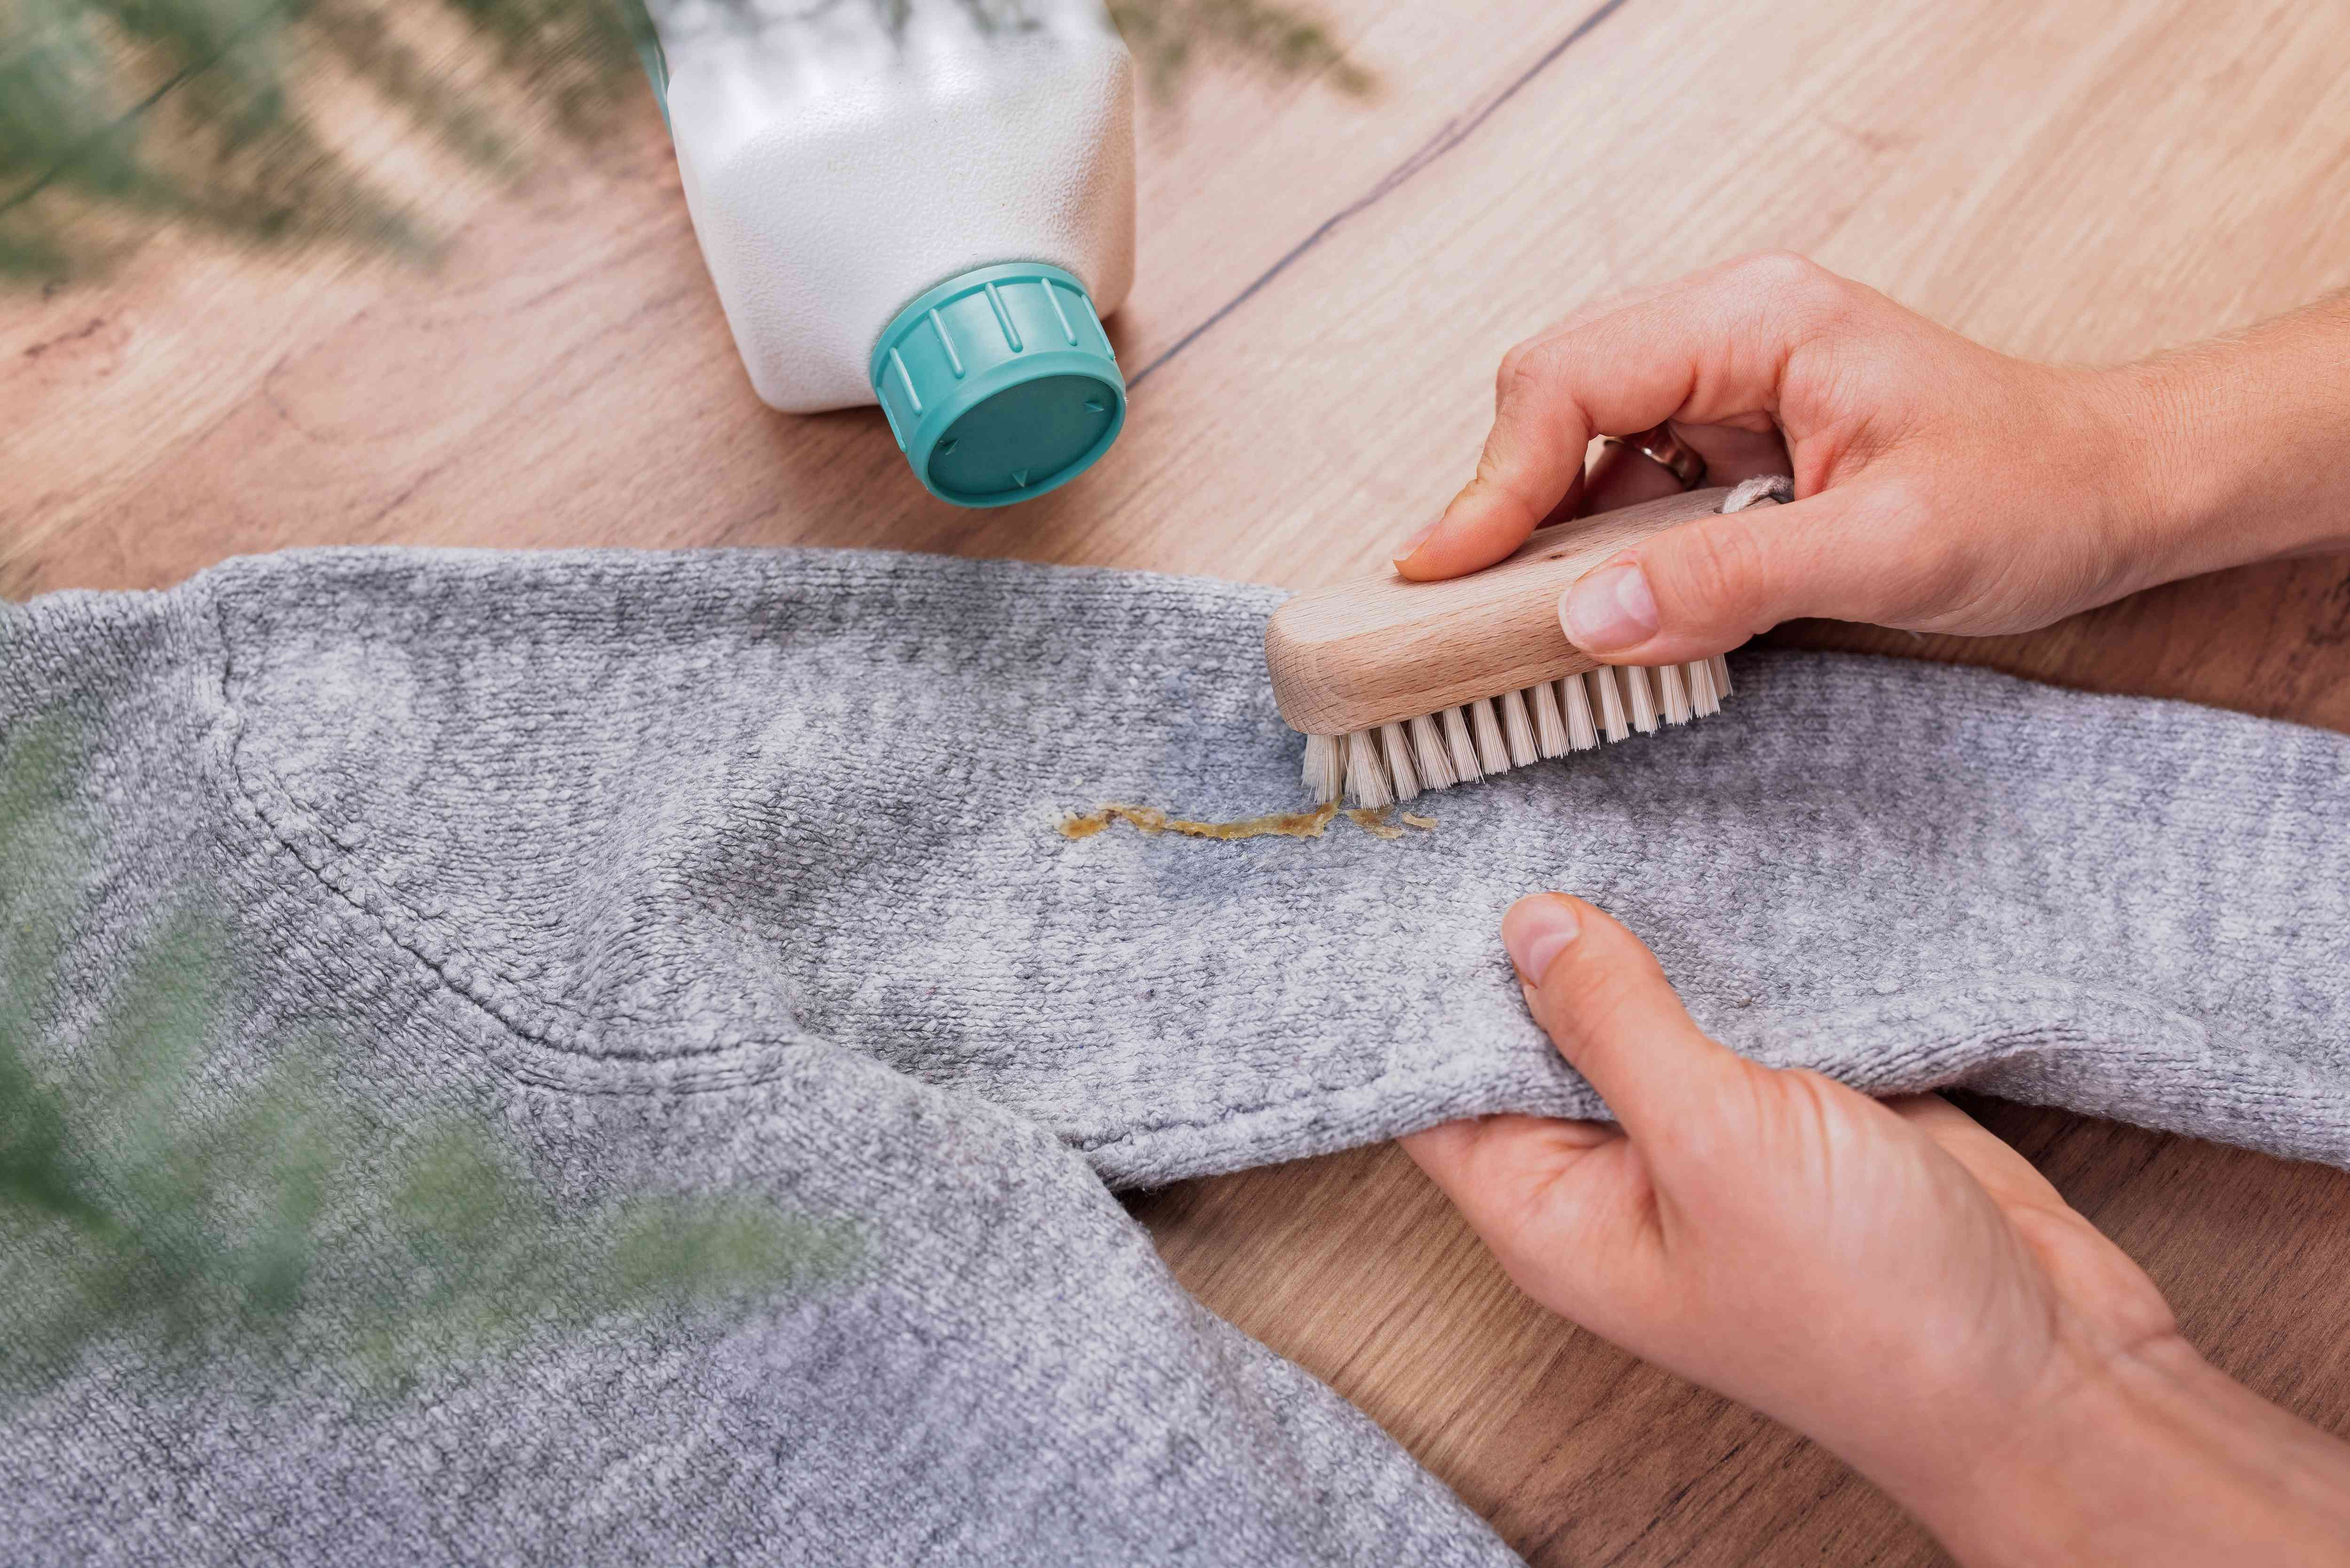 rubbing the stain with a soft brush